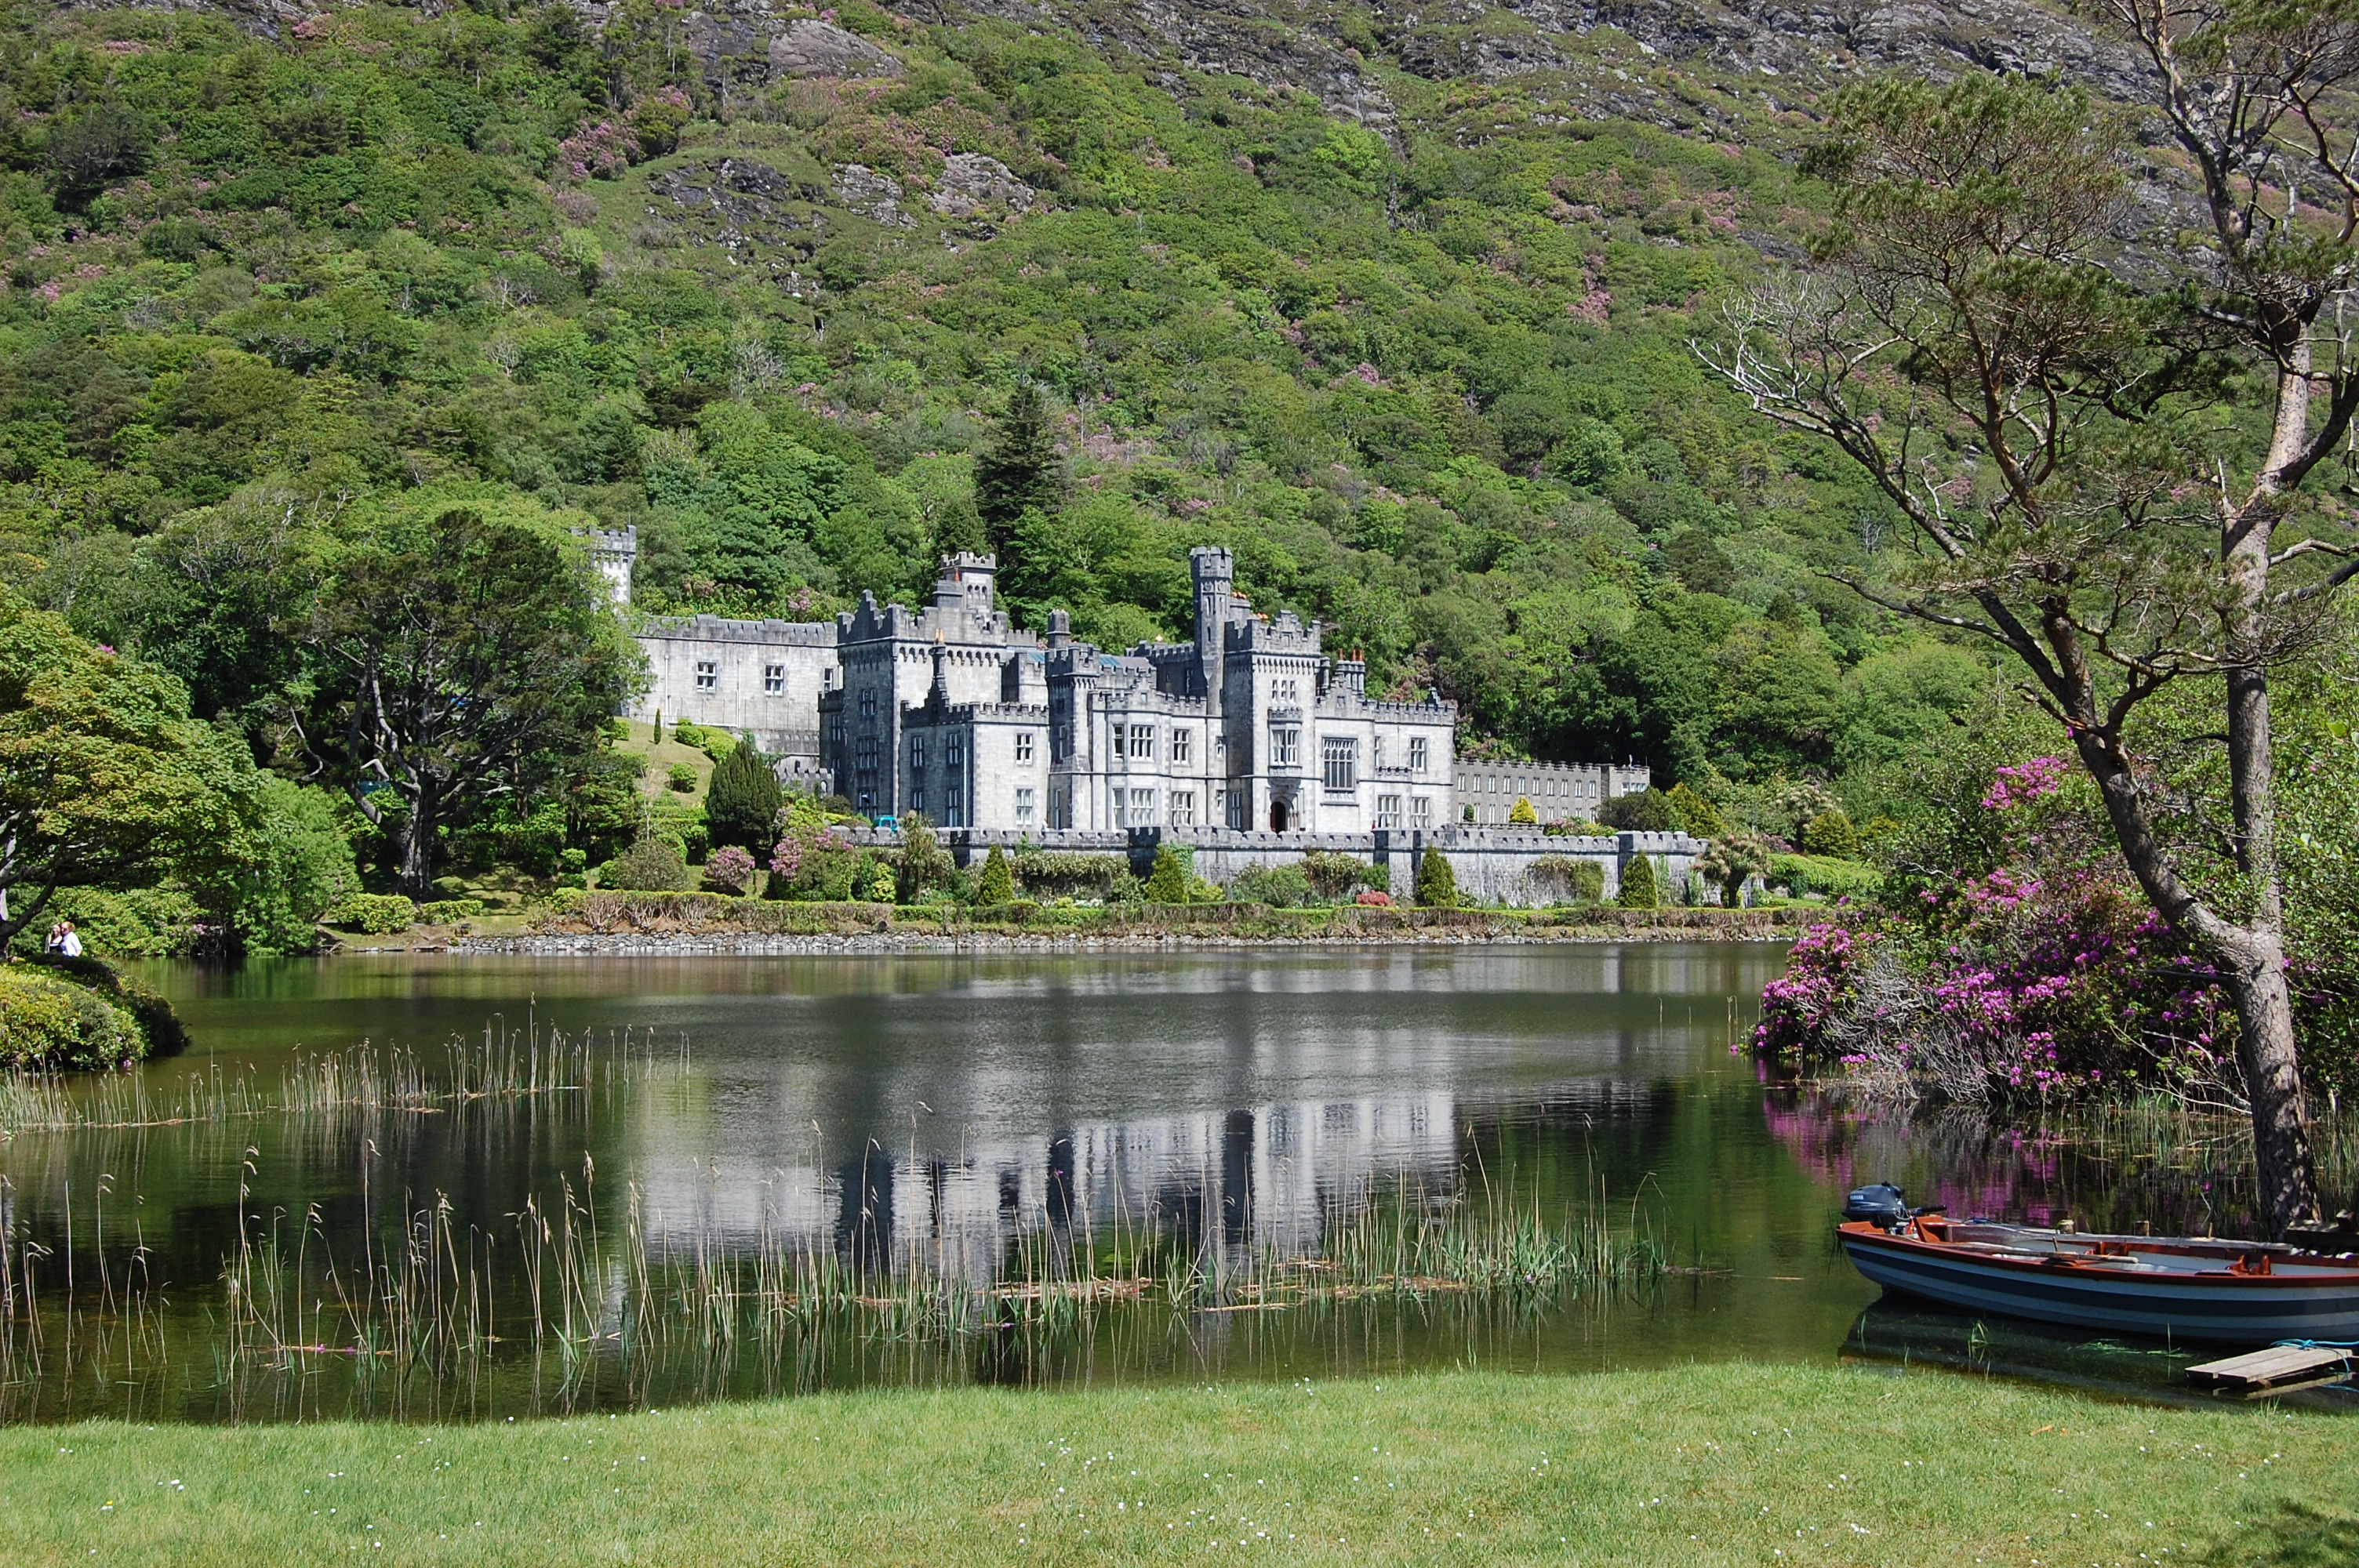 Kylemore_abbey_01